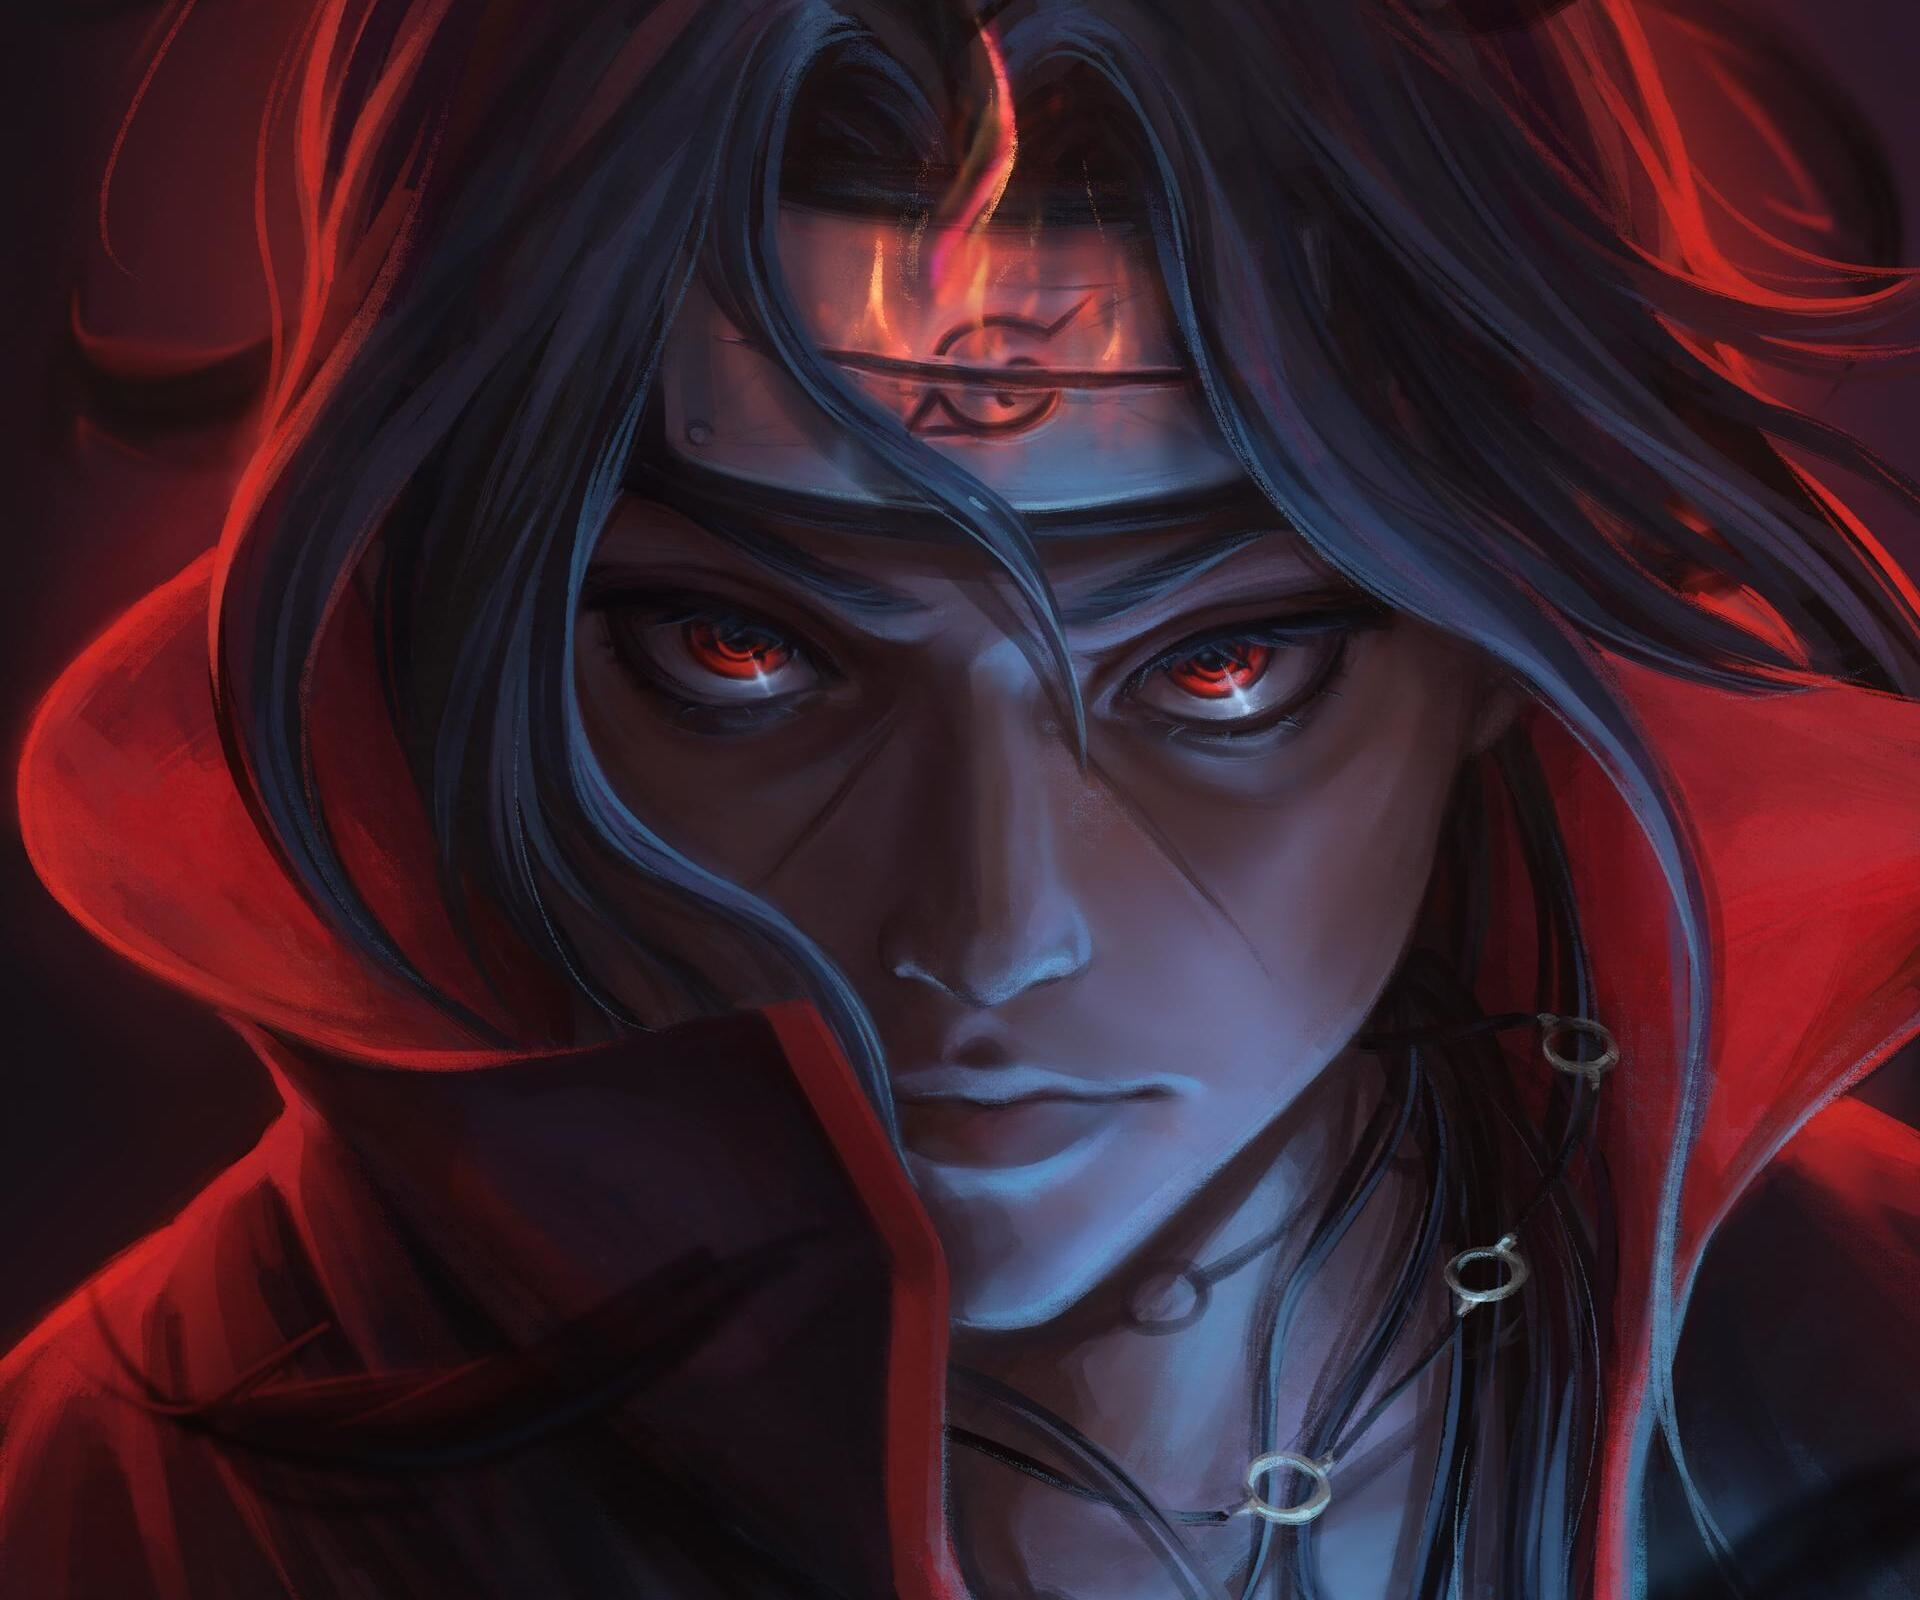 Cool Itachi Uchiha Naruto Art Wallpaper Hd Anime 4k Wallpapers Images Photos And Background